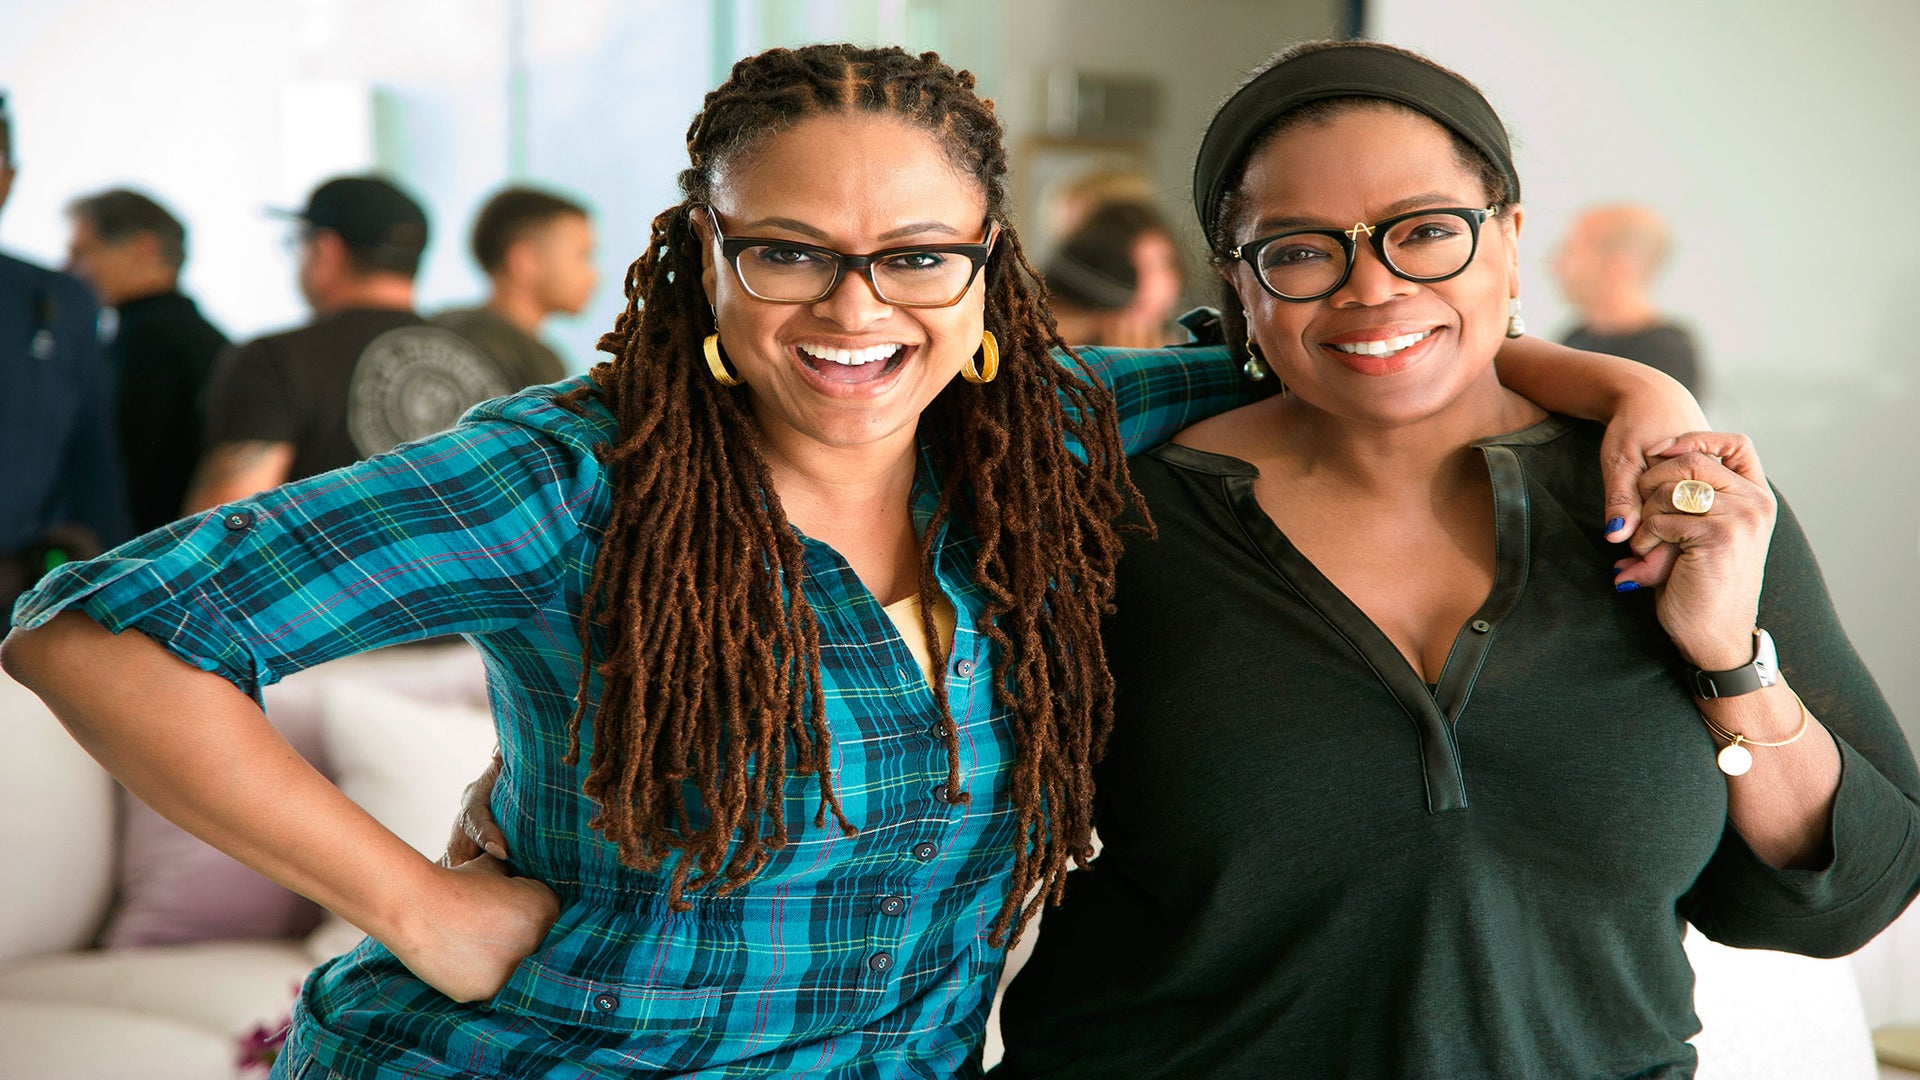 How Ava Duvernay and Oprah Winfrey's Friendship Led to 'Queen Sugar'